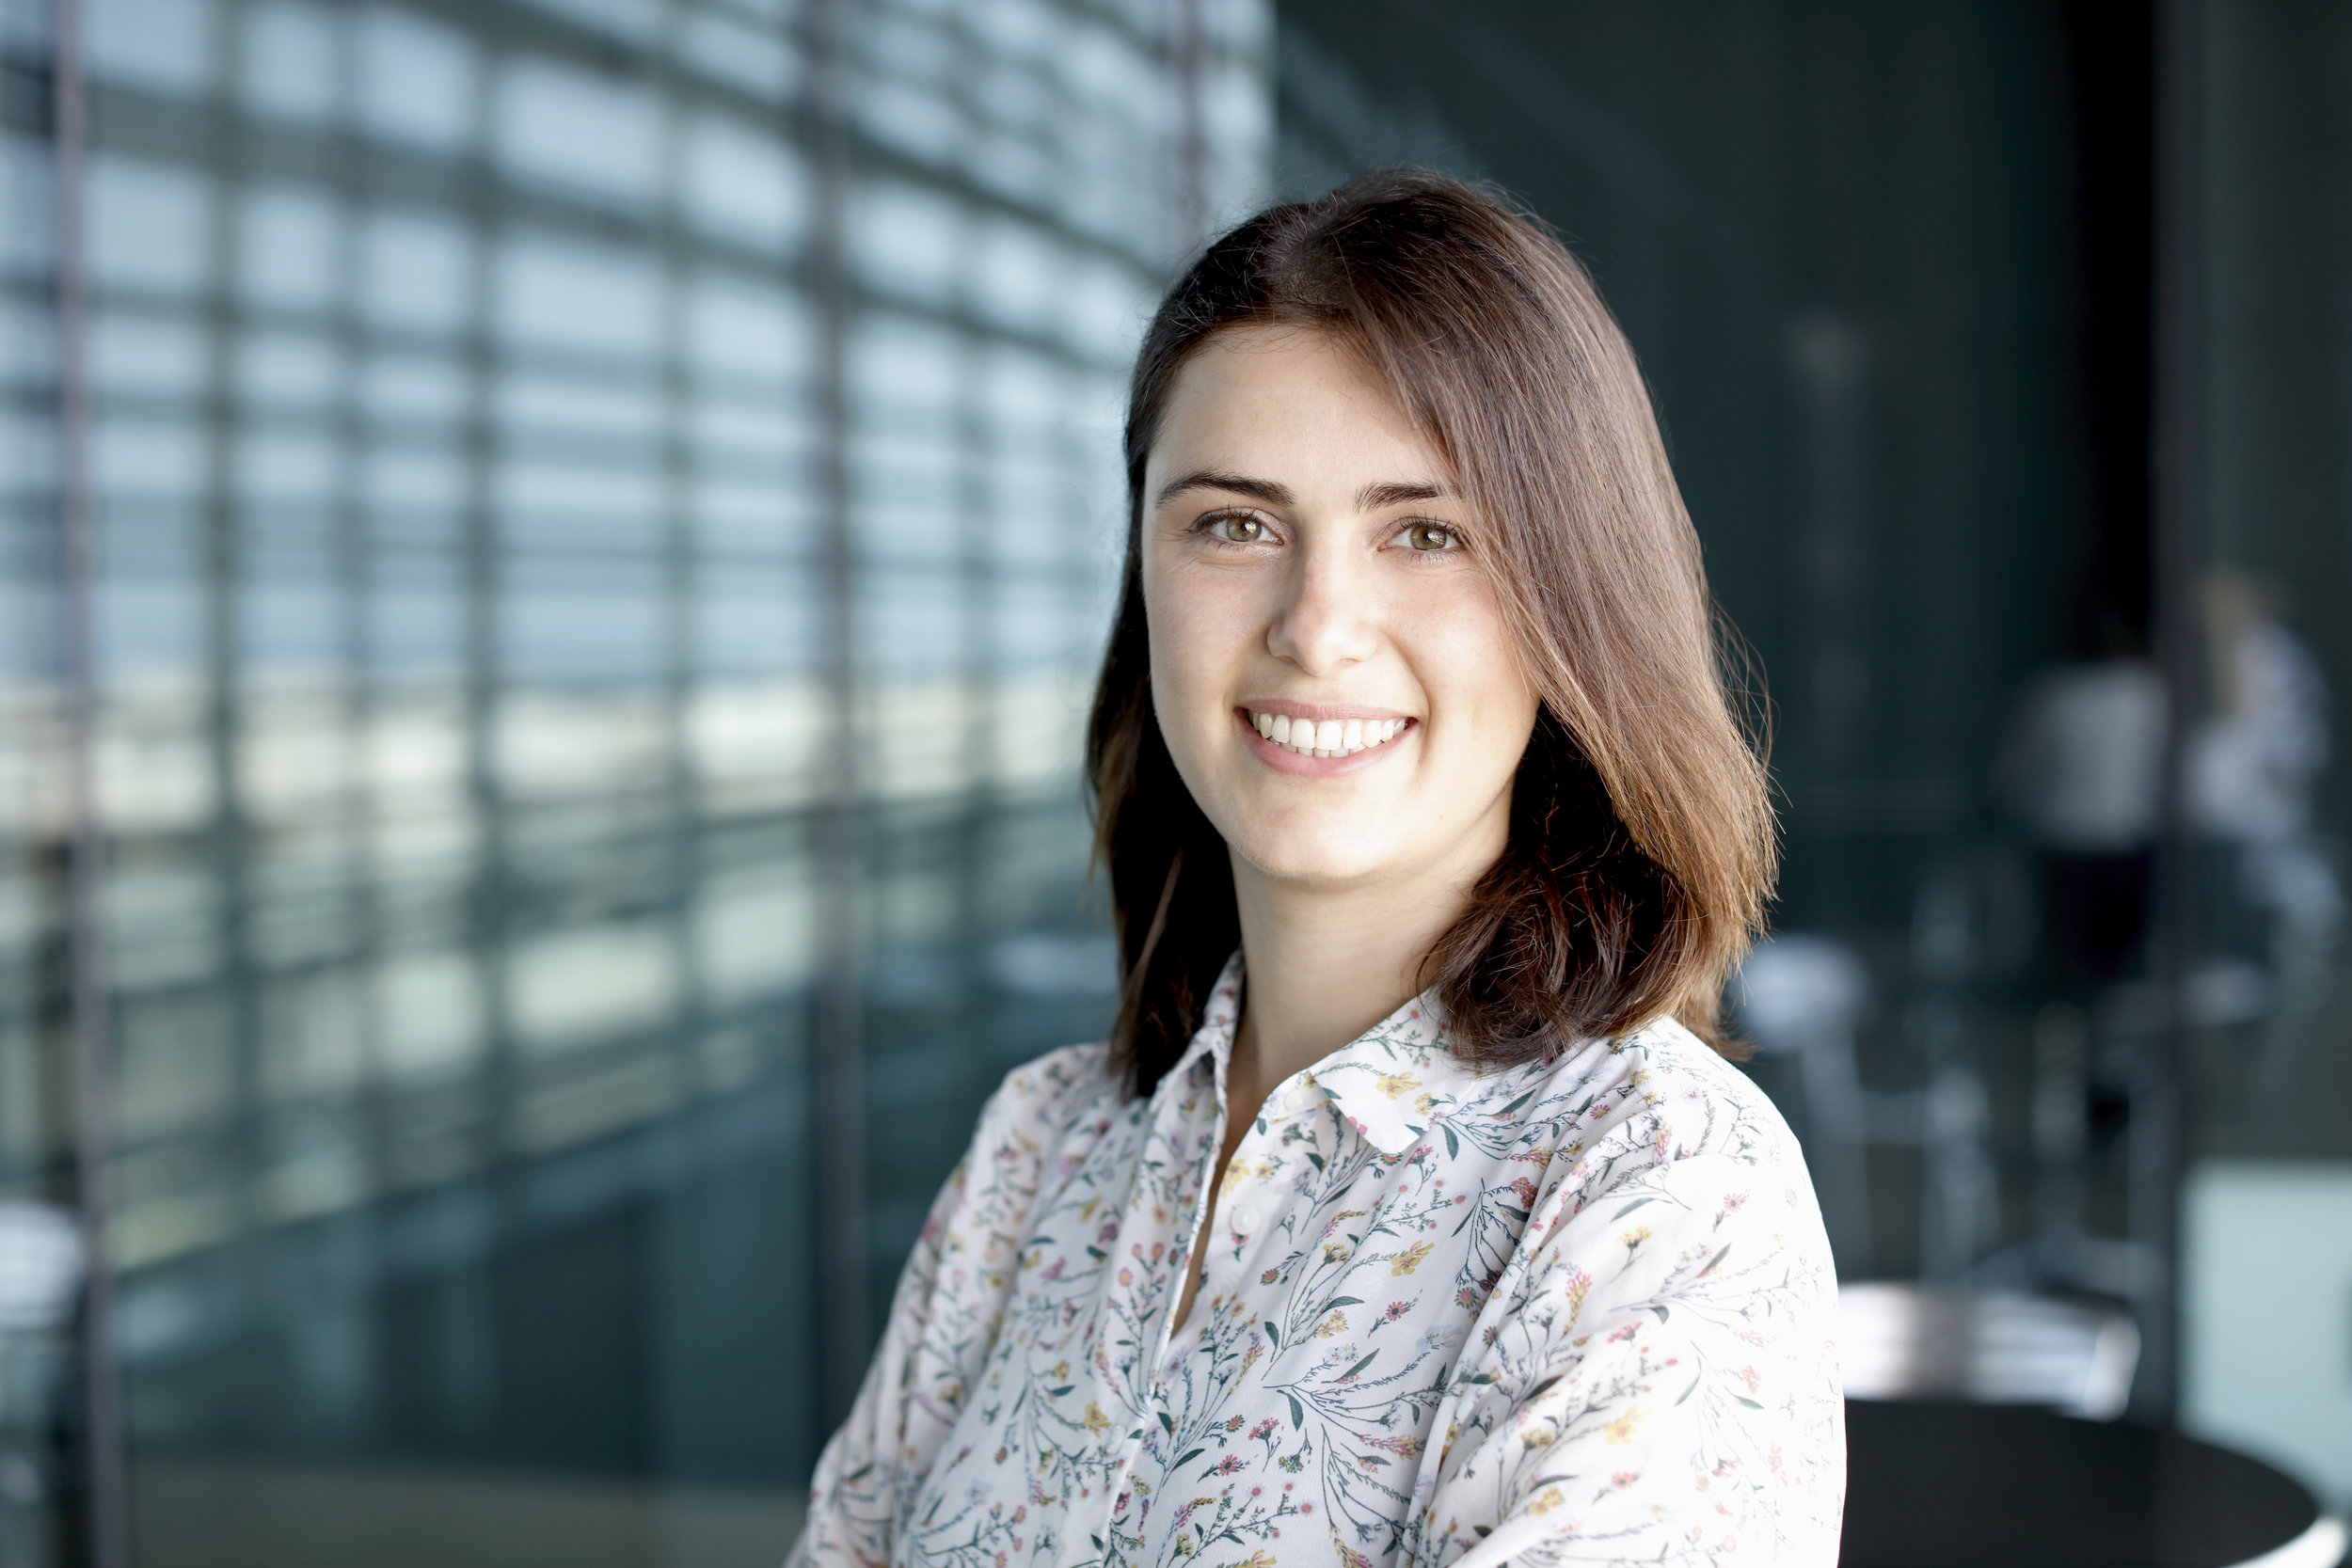 Dr. Derya Baran nominated to partake in the 67th Lindau Nobel Laureate Meeting - 26/7/17OMEGA Lab group's PI, Professor Dr.Derya Baran, was nominated by the Helmholtz Association, Germany, to attend the 67th Lindau Laureate Meeting (Chemistry). This annual event enables the next generation of leading scientists to meet with approx. 30 Nobel Laureates and fosters exchange amongst scientists of different generations, cultures, background and disciplines. The topic of the meeting rotates anually between physiology and medicine, physics and chemistry.